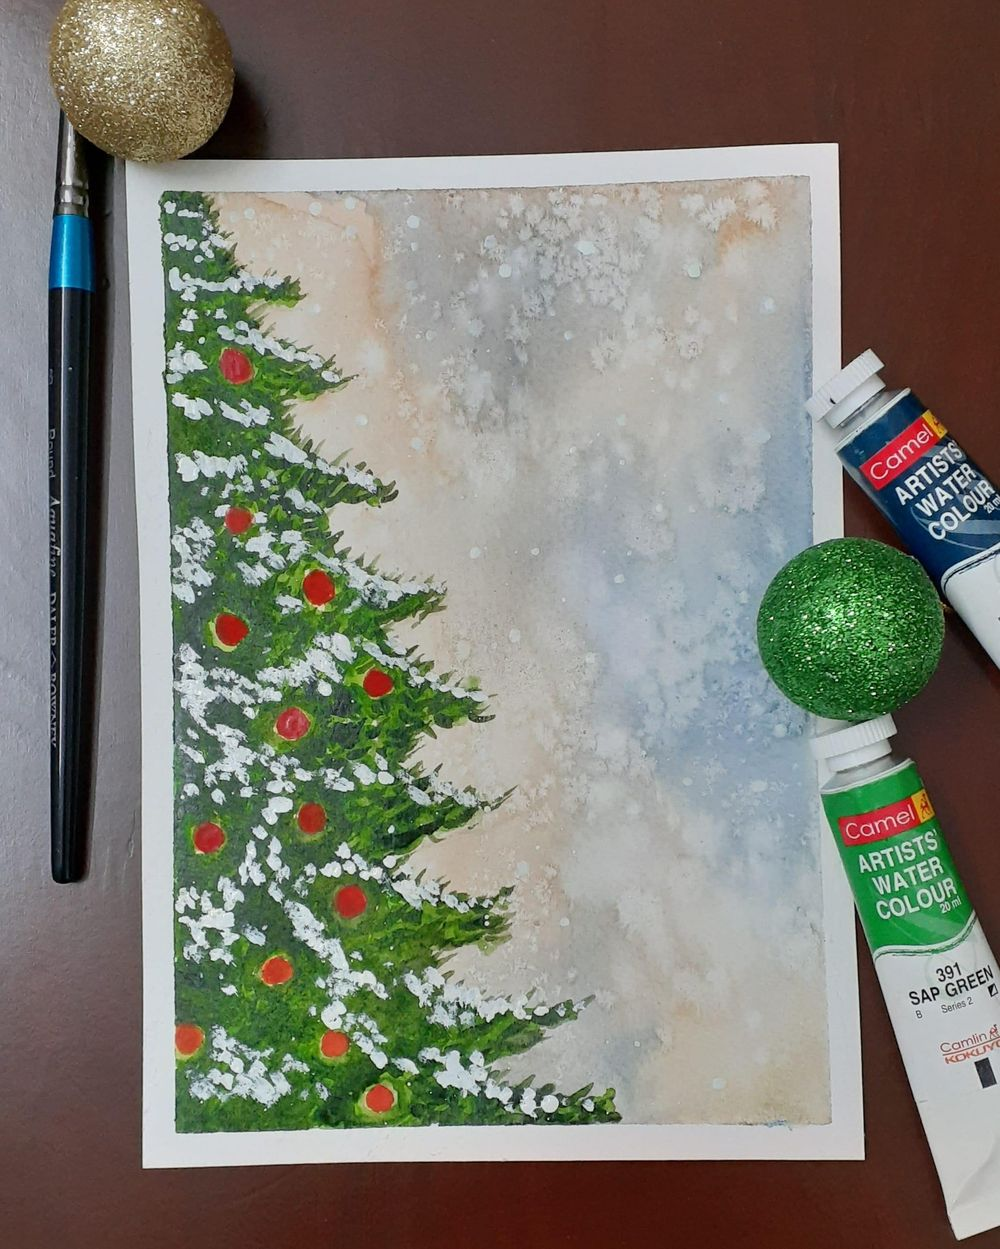 Countdown to Christmas with 24 Beautiful Paintings - image 6 - student project